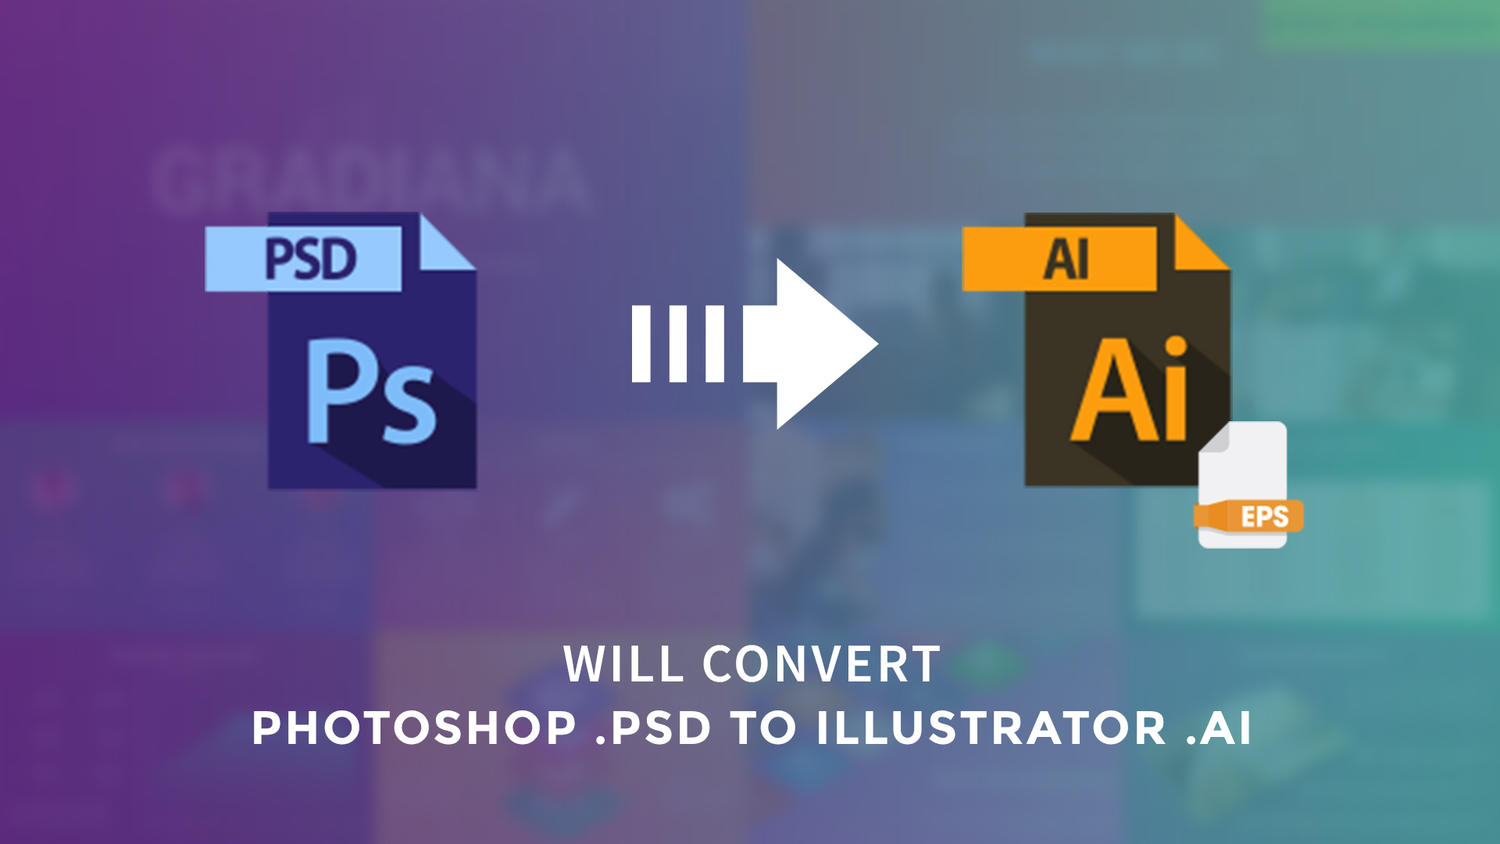 Convert Photoshop PSD to Illustrator Ai by arvaone - 108957